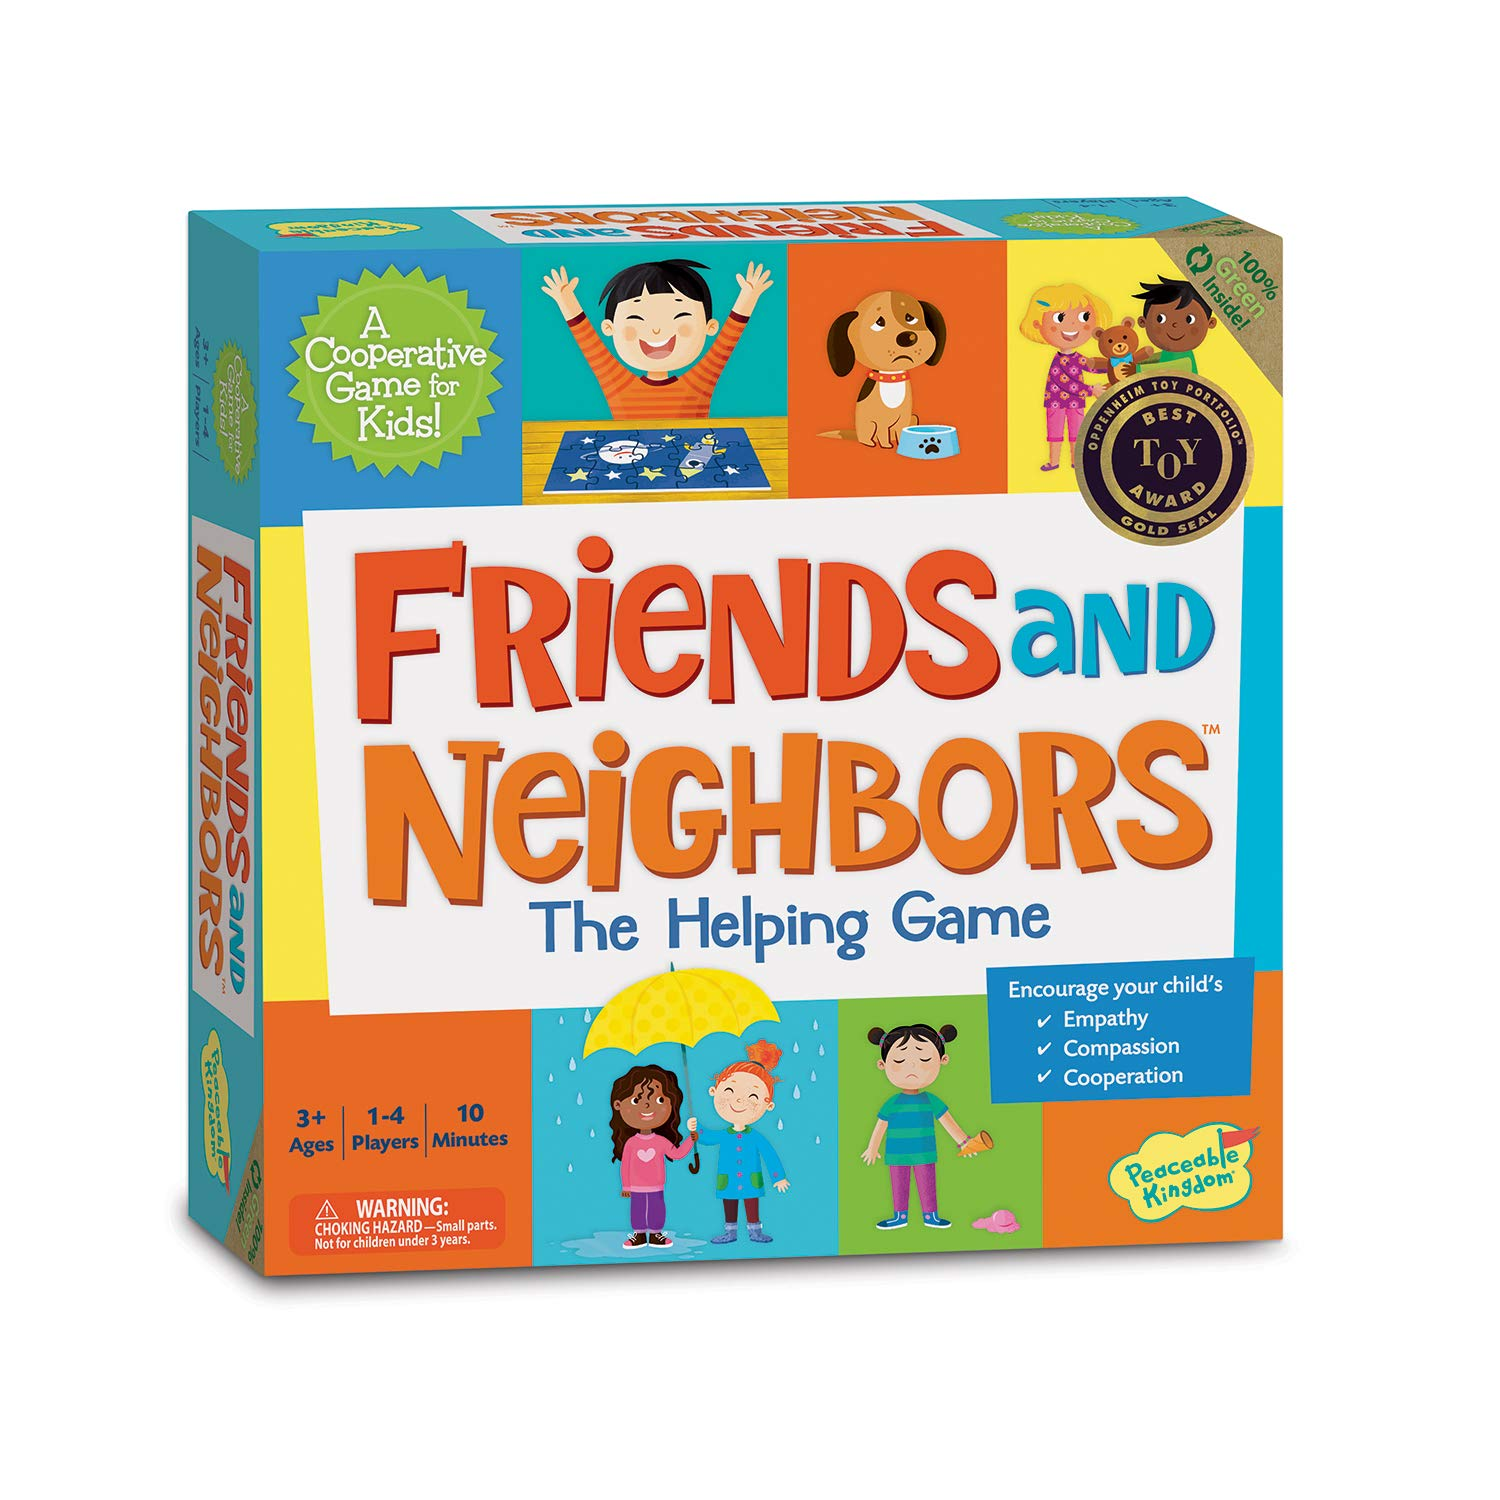 The 5 Best Cooperative Board Games for 3-year-olds - Friends and Neighbors.jpg